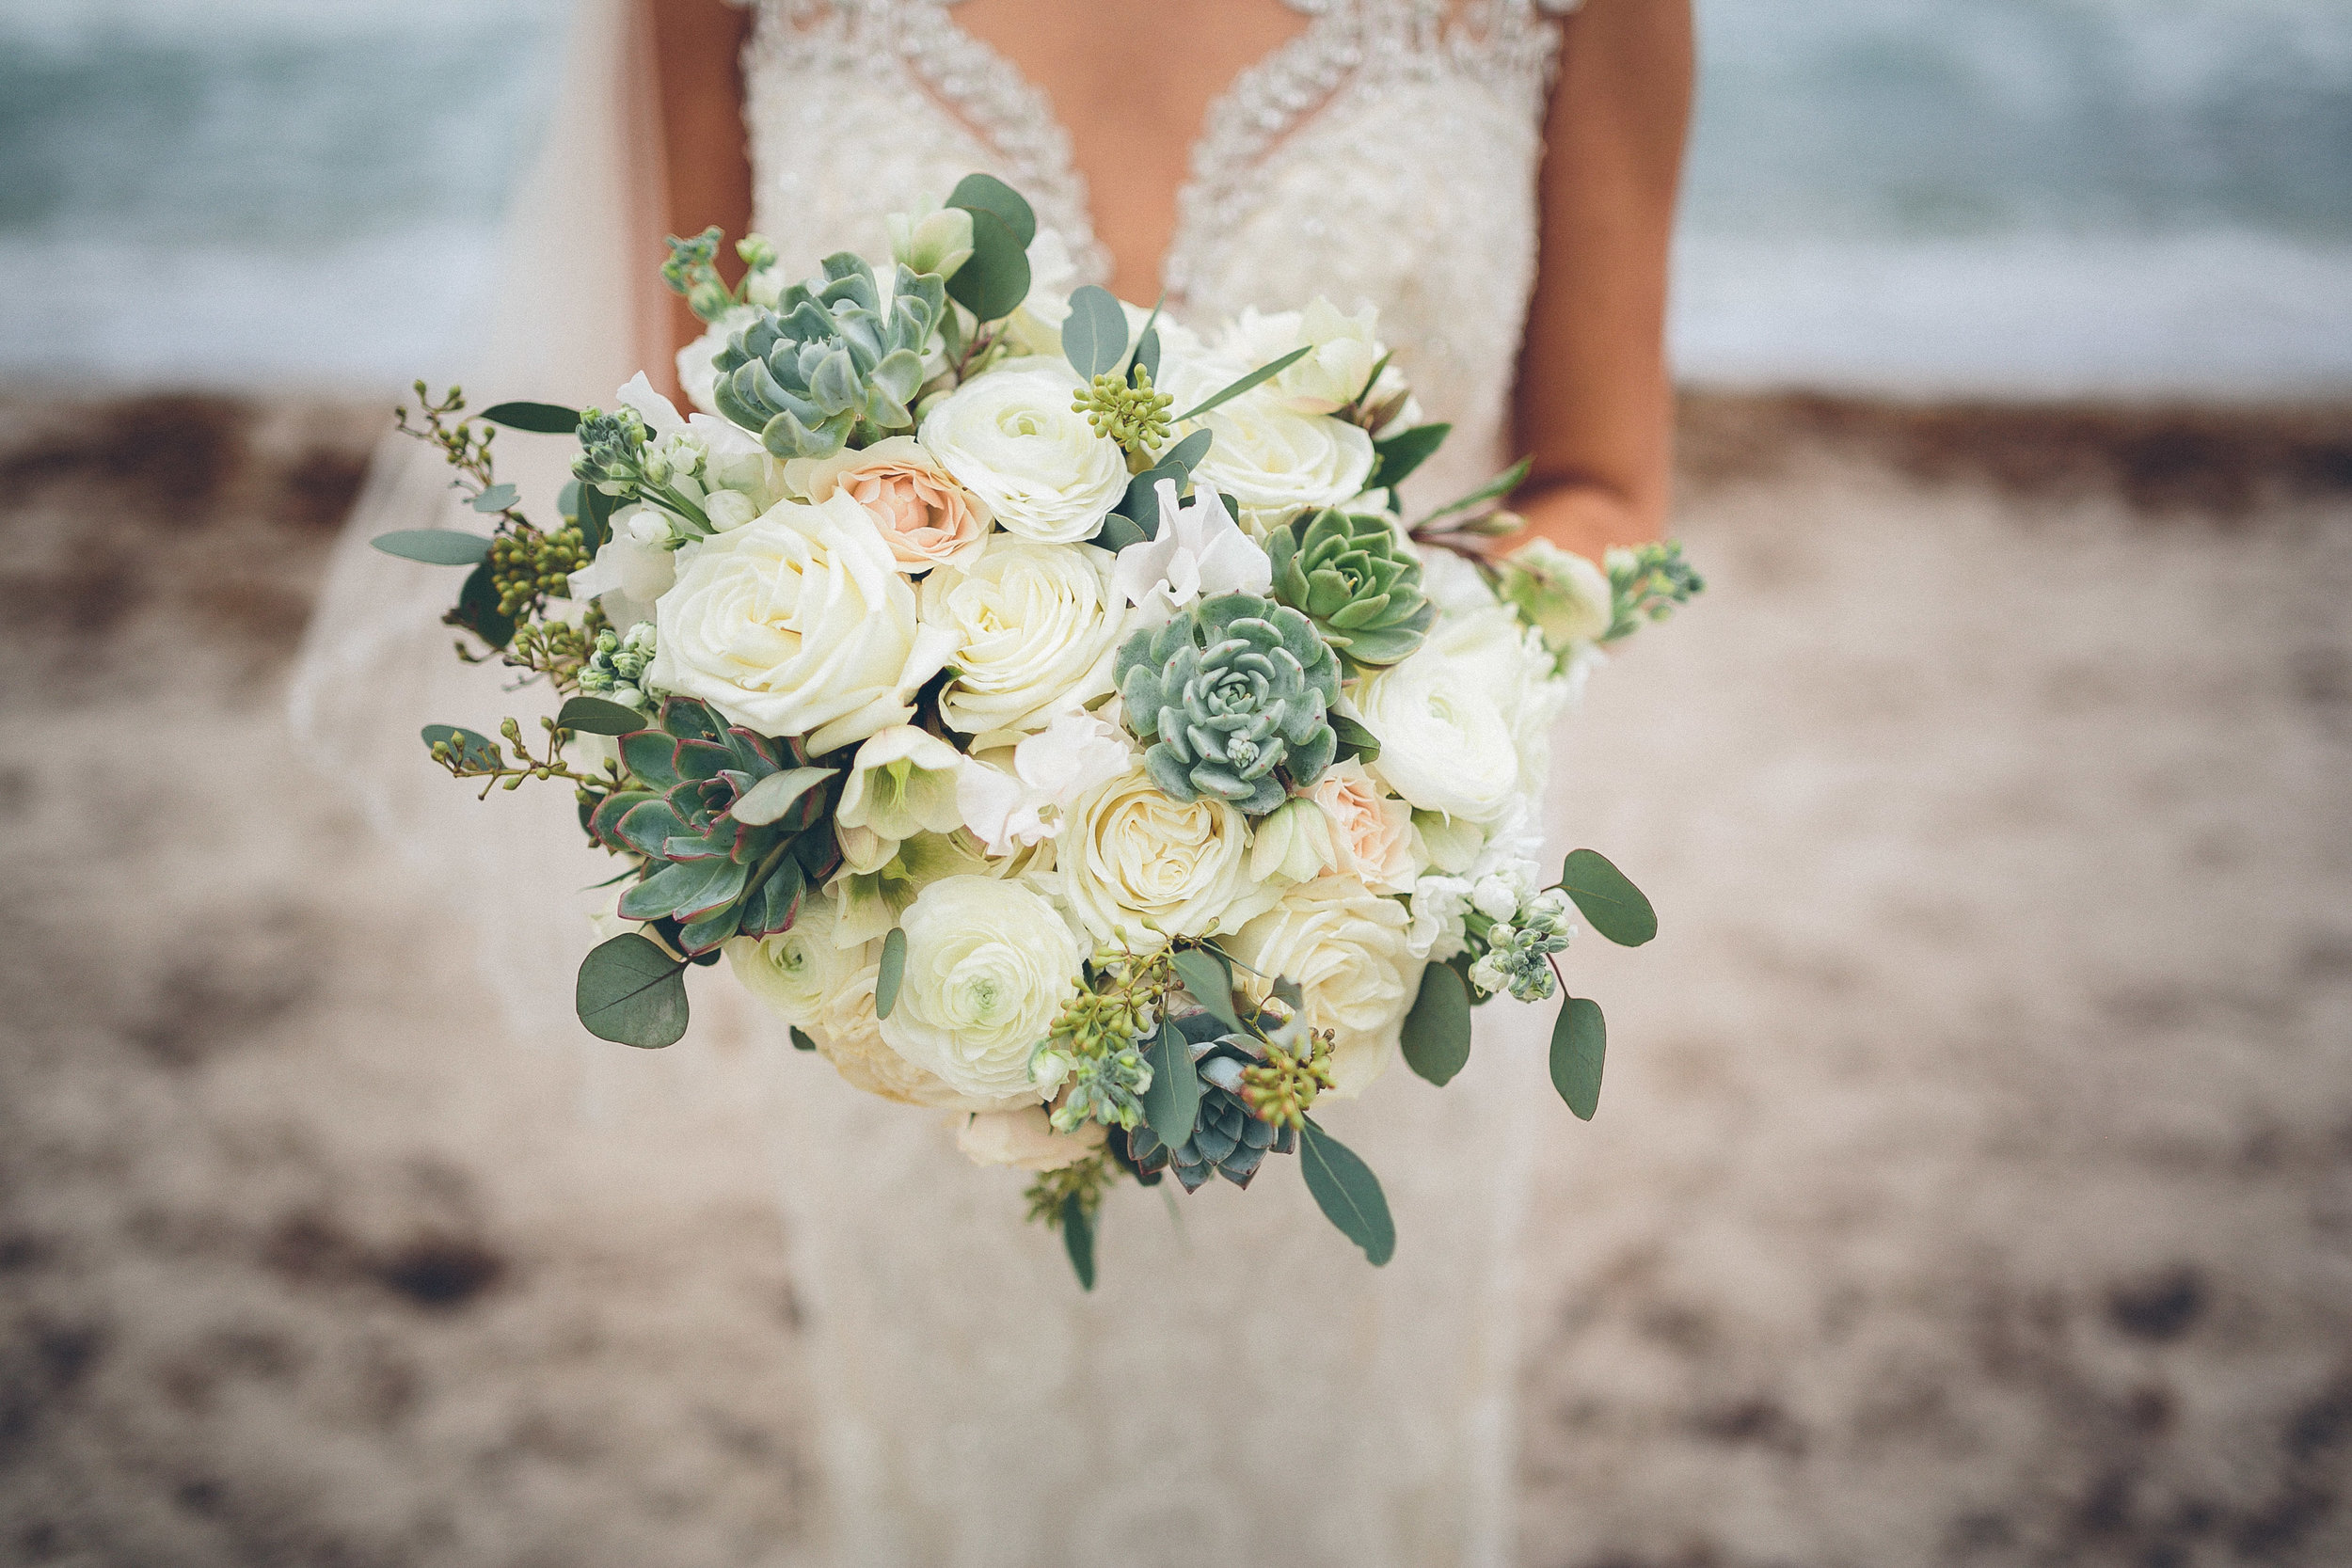 Ever After Floral Design  made this bouquet with the perfect combination of neutrals and greens to compliment our bride's tranquil oceanfront wedding. It is full of garden roses, ranunculus, eucalyptus leaves, and scattered with various echeveria and graptopetalum succulents.